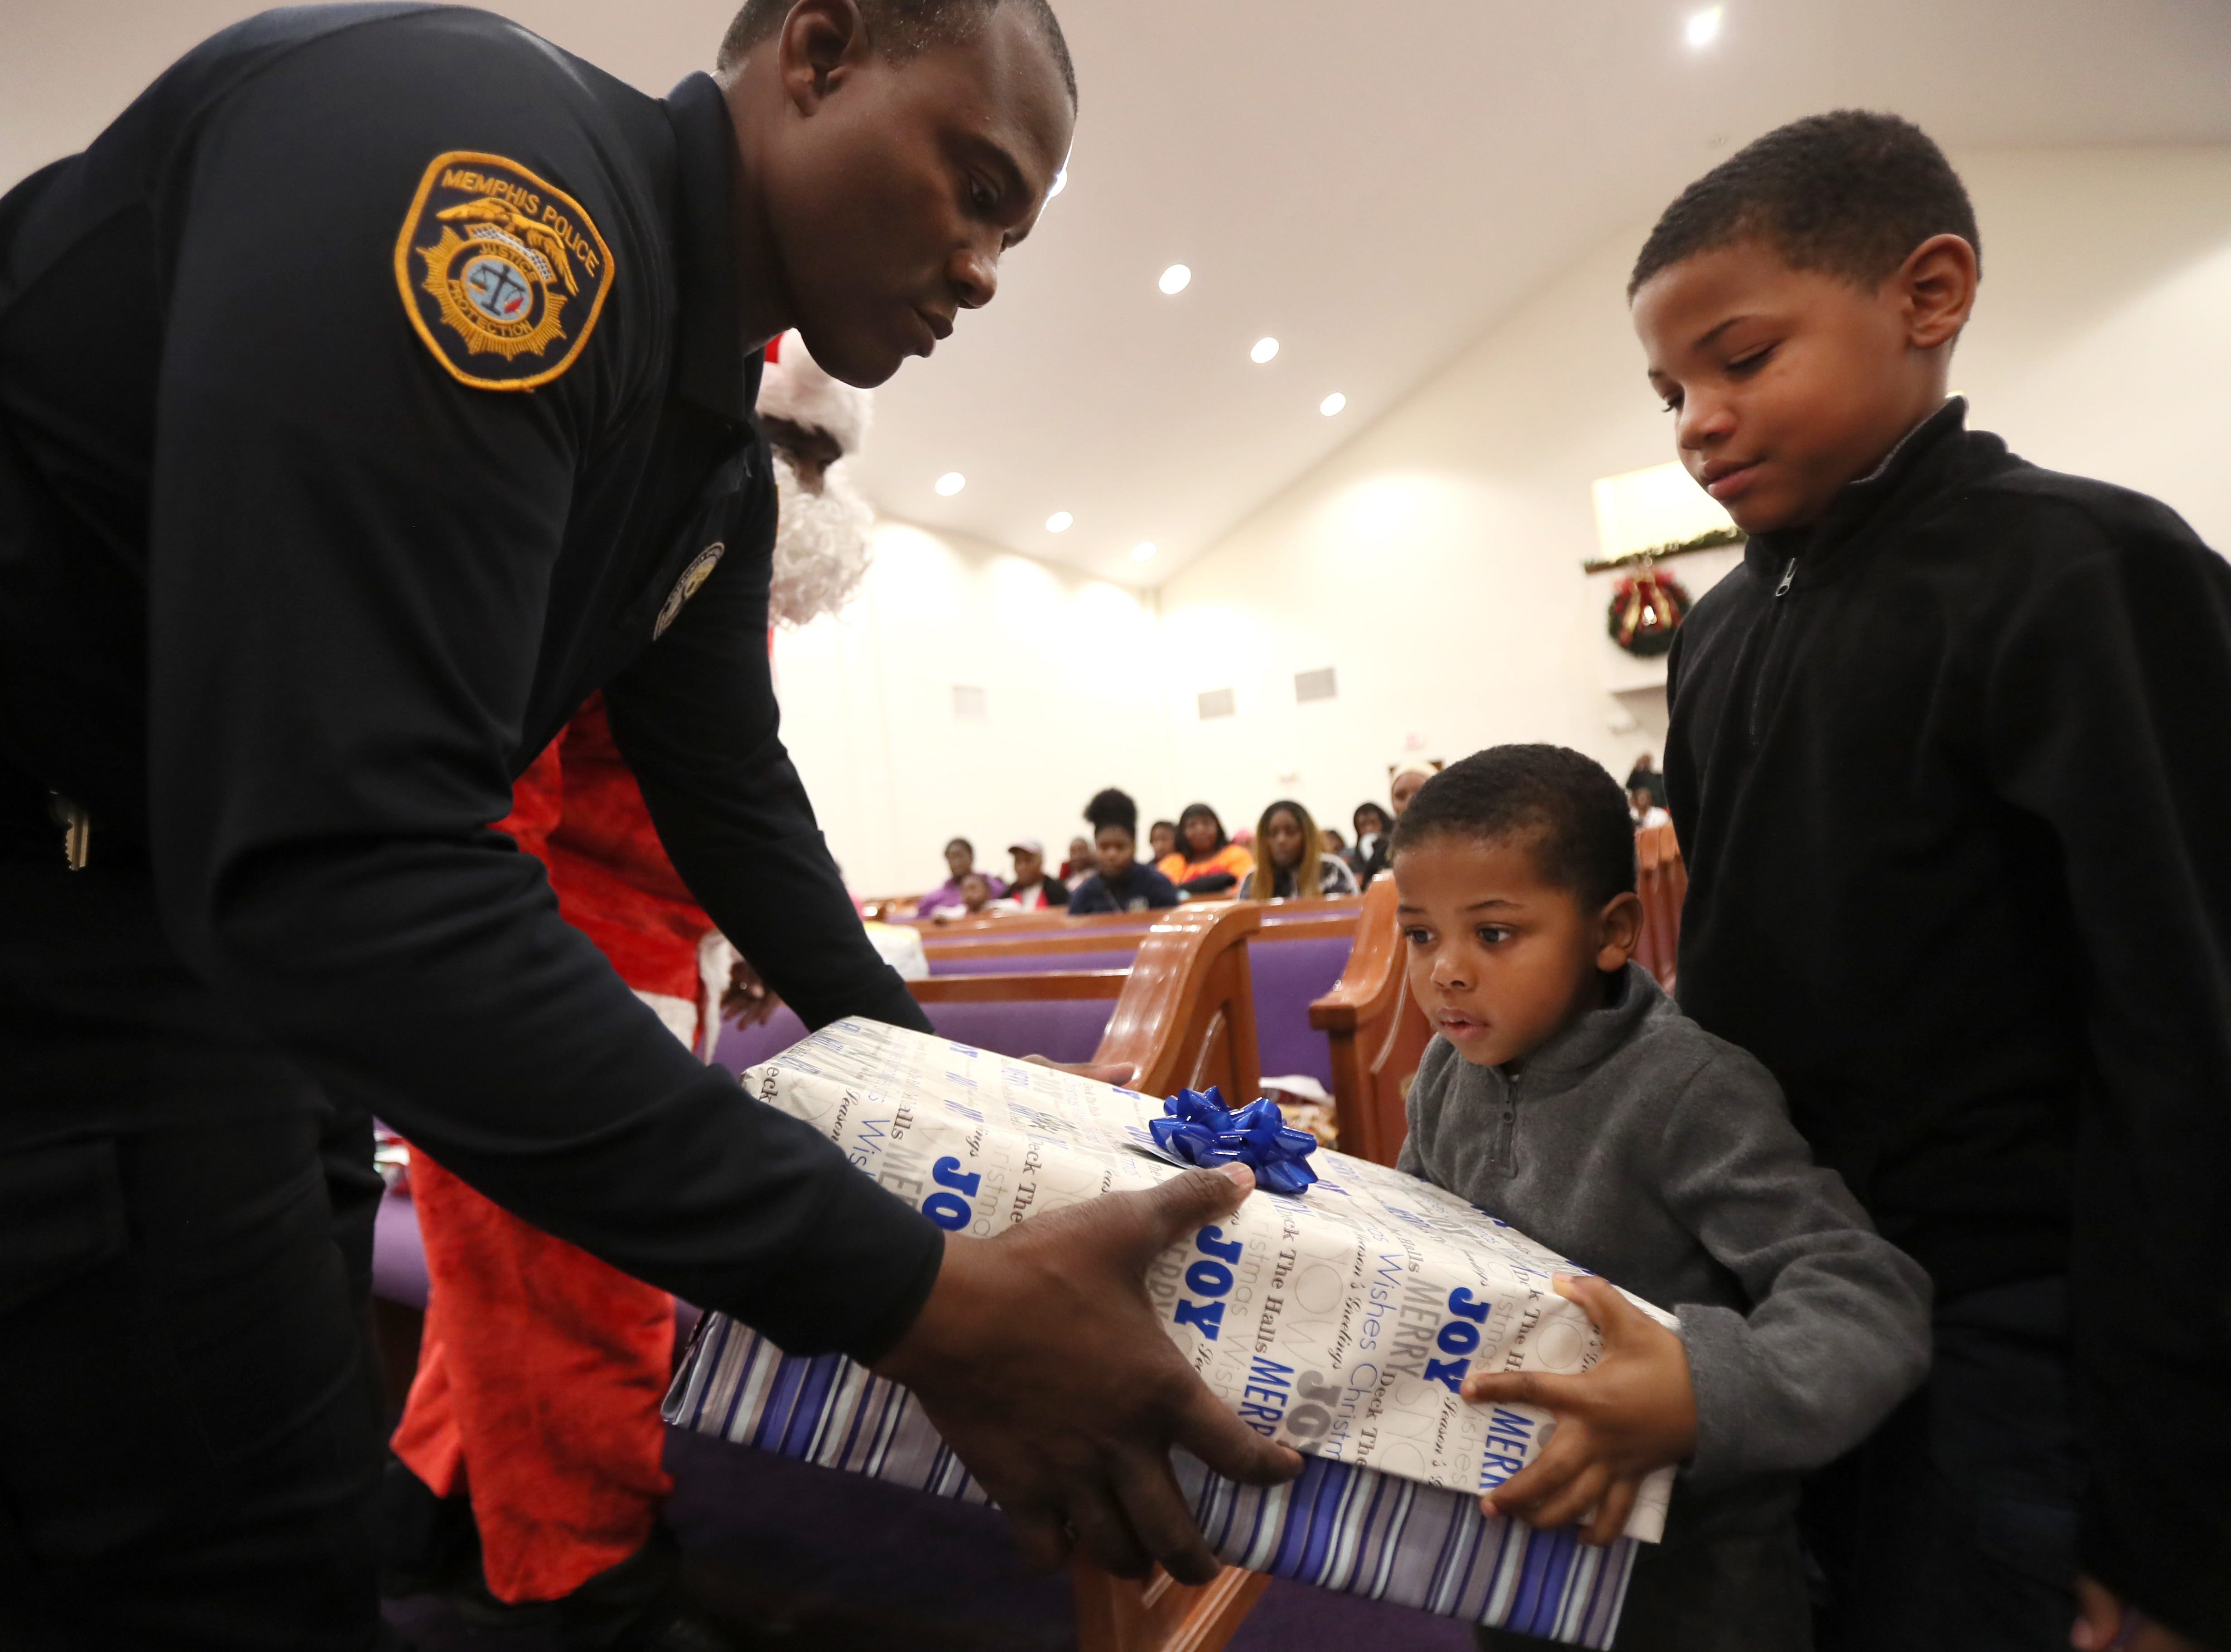 Officer Clayton Turner hands out gifts to brothers Chase, 3, and Peyton Glover, 9, as the MPD's Community Outreach Program brings Christmas cheer to dozens of families at Grace Missionary Baptist Church on Thursday, Dec. 20, 2018.